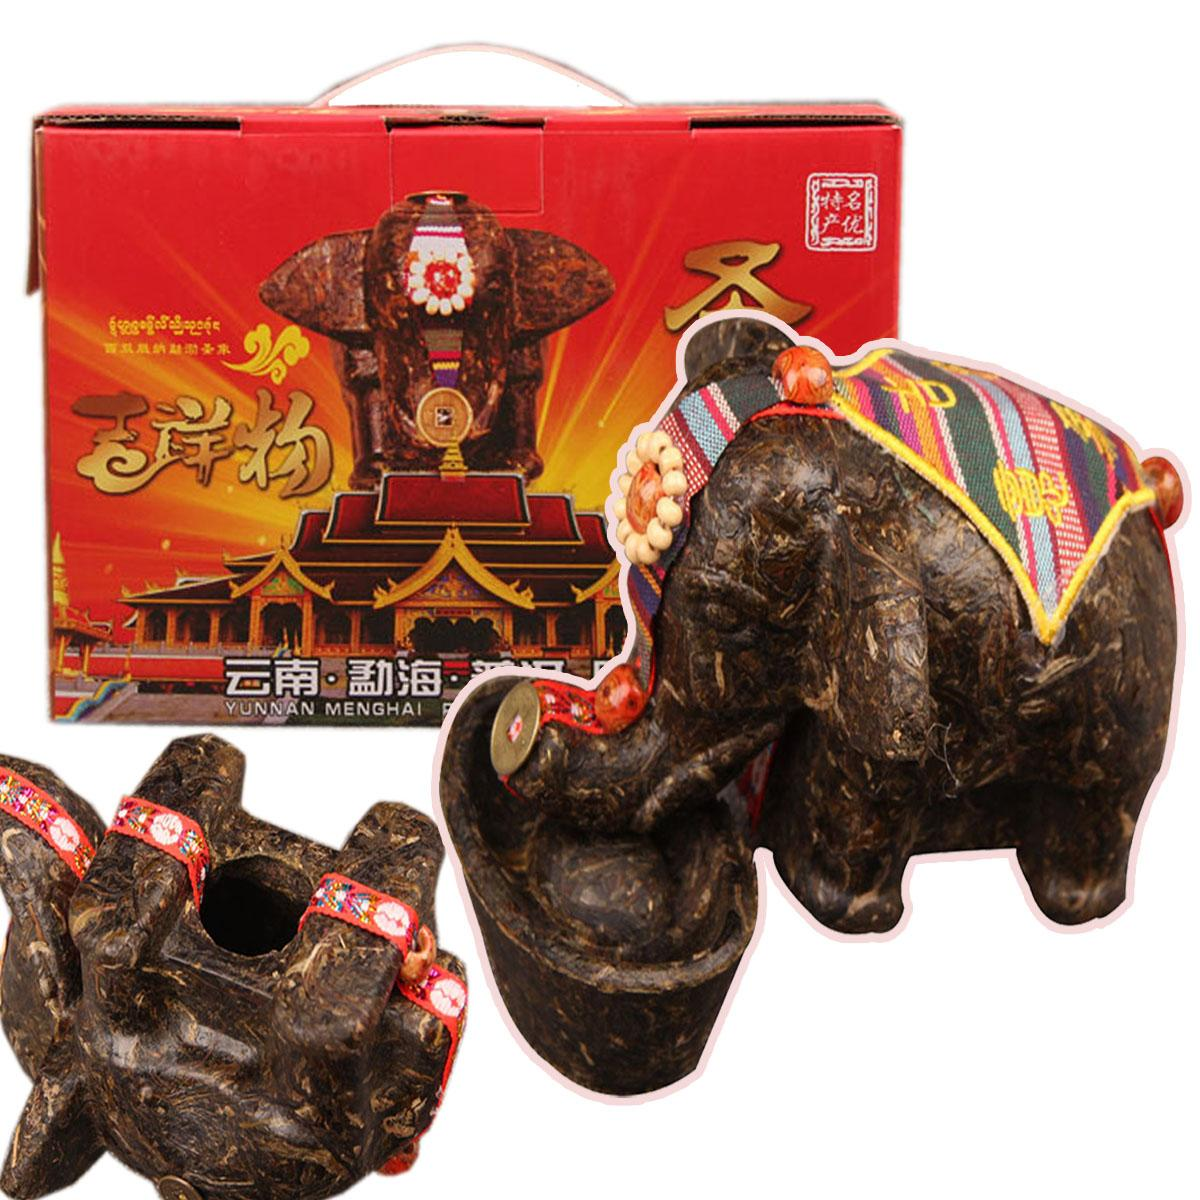 High quality 500g China Yunnan Raw Puer Tea Lucky Creative Gift Elephant shape Craft Pu'er Carving Gifts Green Food